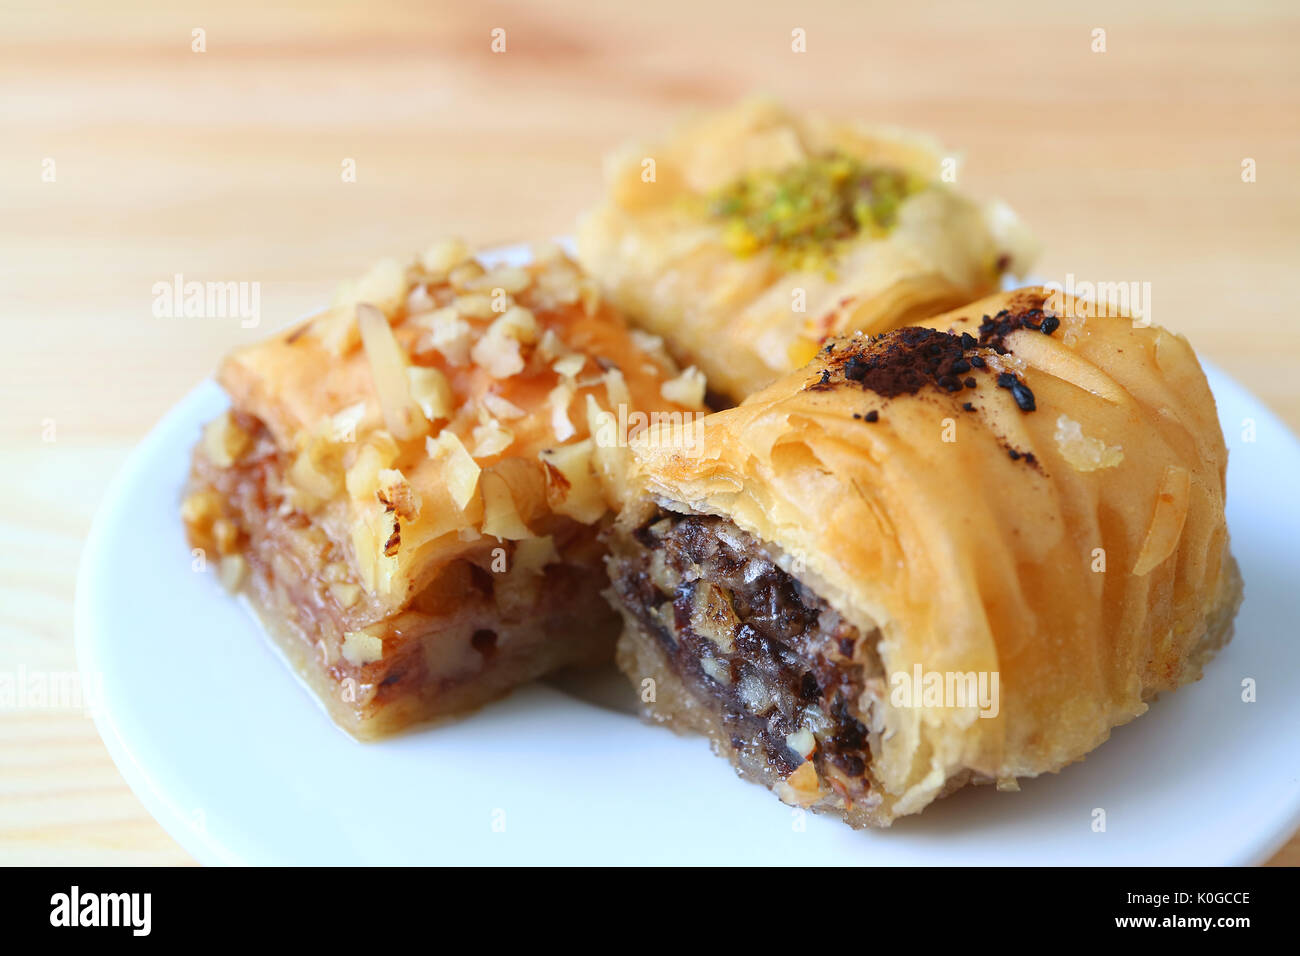 Closed up Three Types of Baklava Sweets on White Plate Served on Wooden Table, Blurred Background Stock Photo